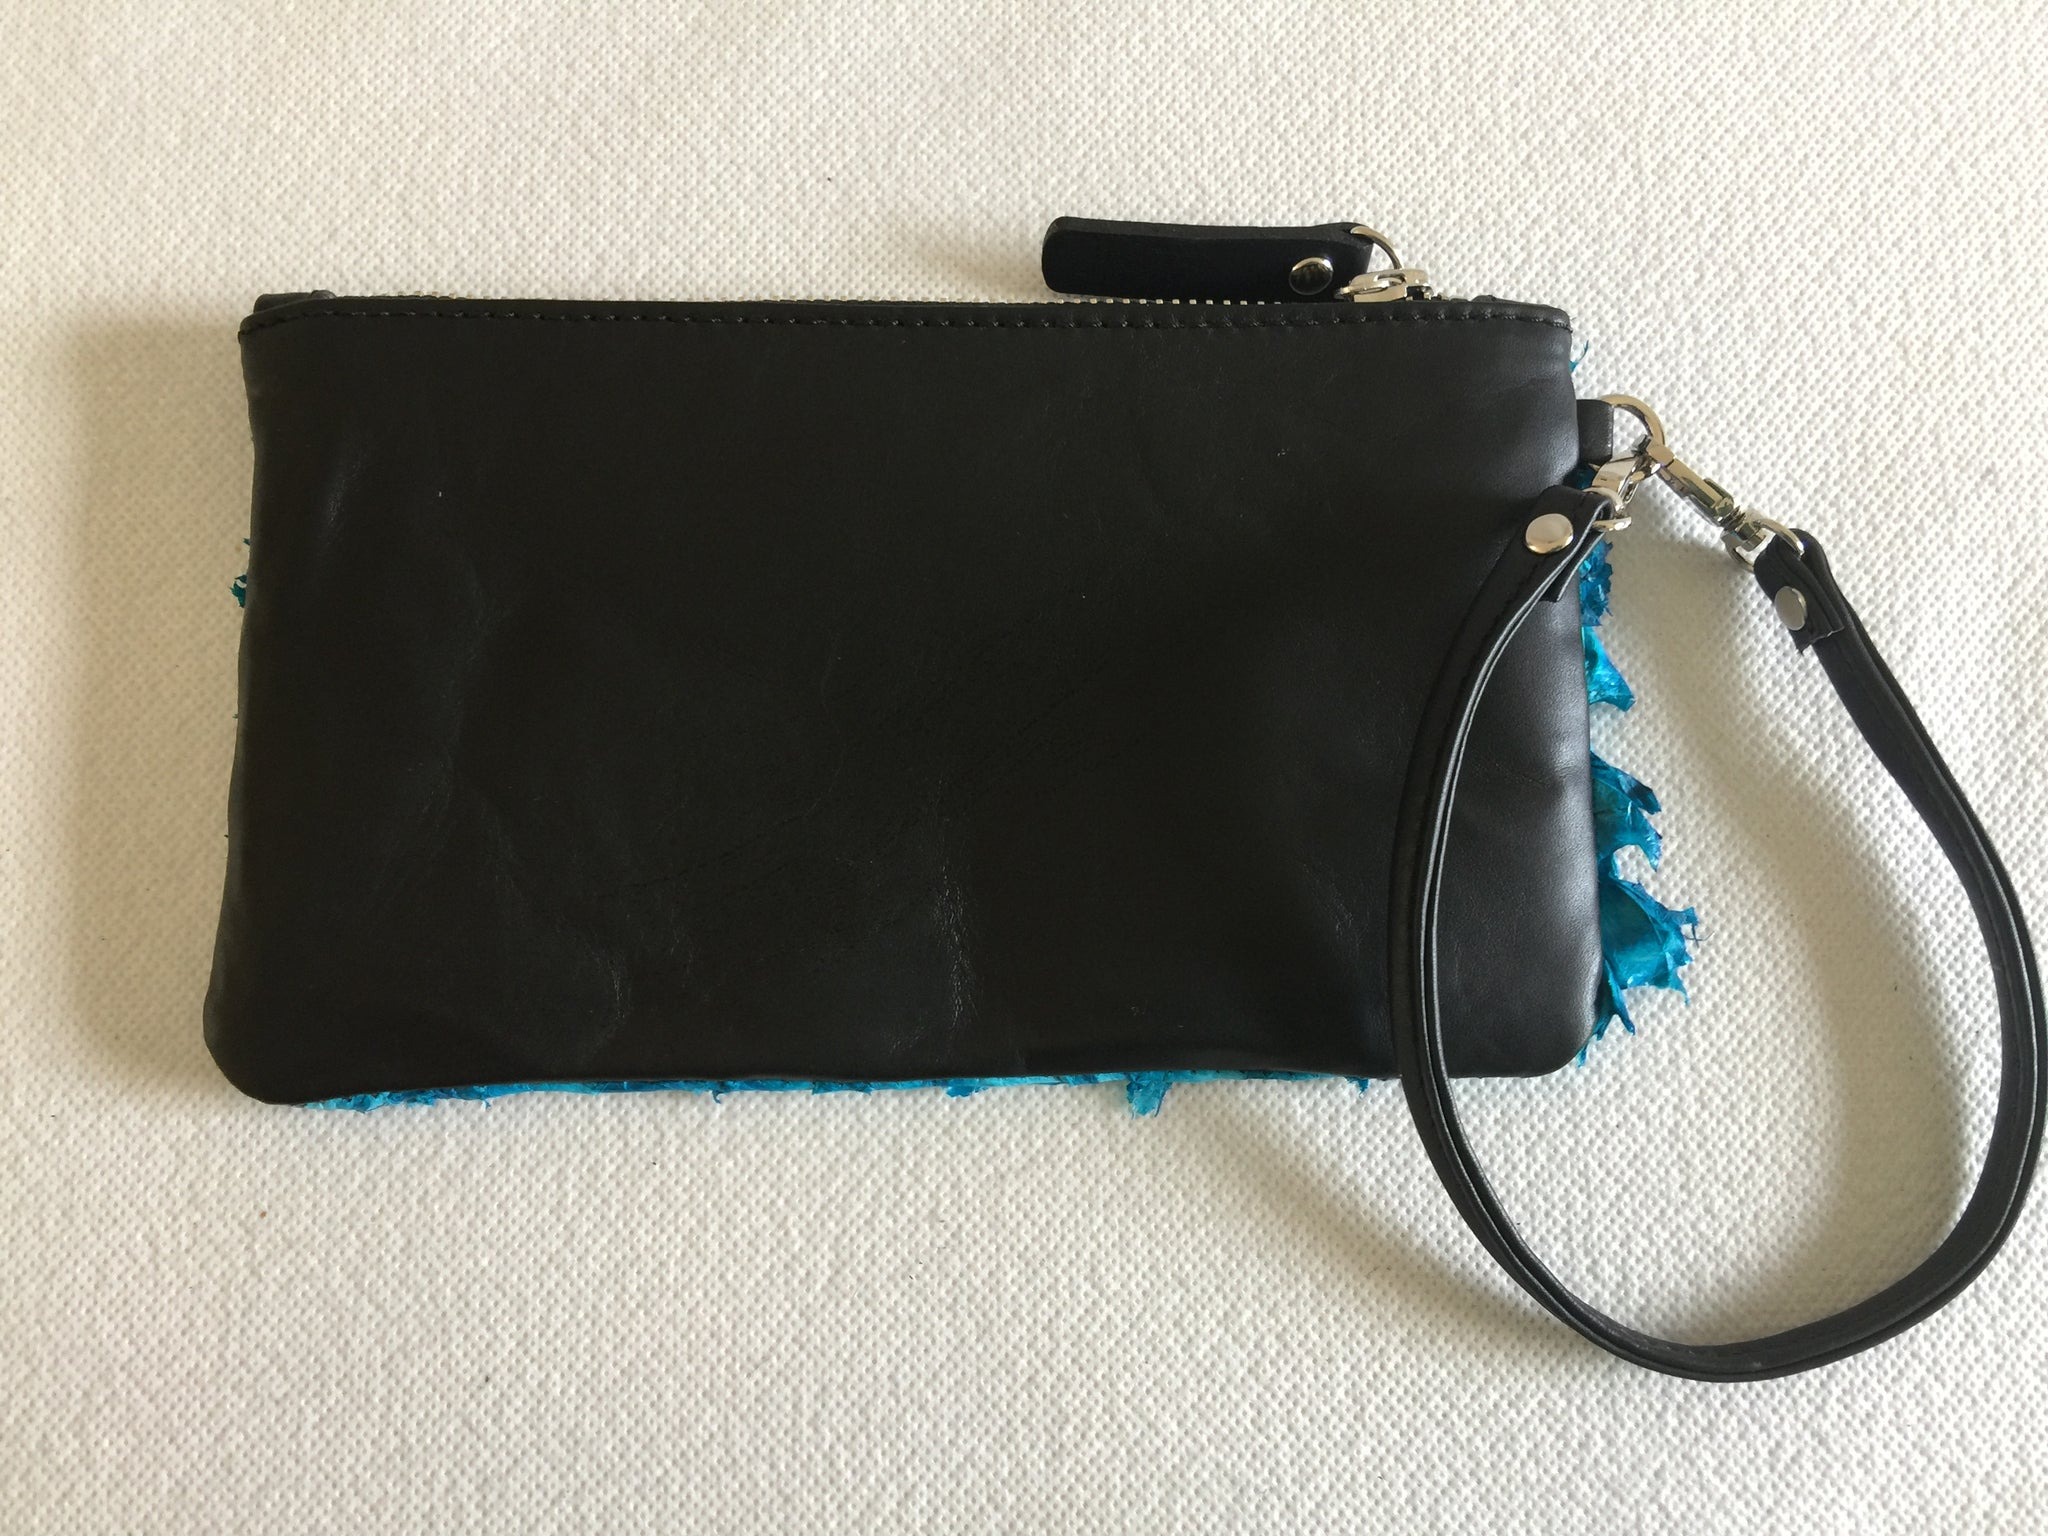 Ella purse in black leather with San Andre's blue ruffled barramundi leather